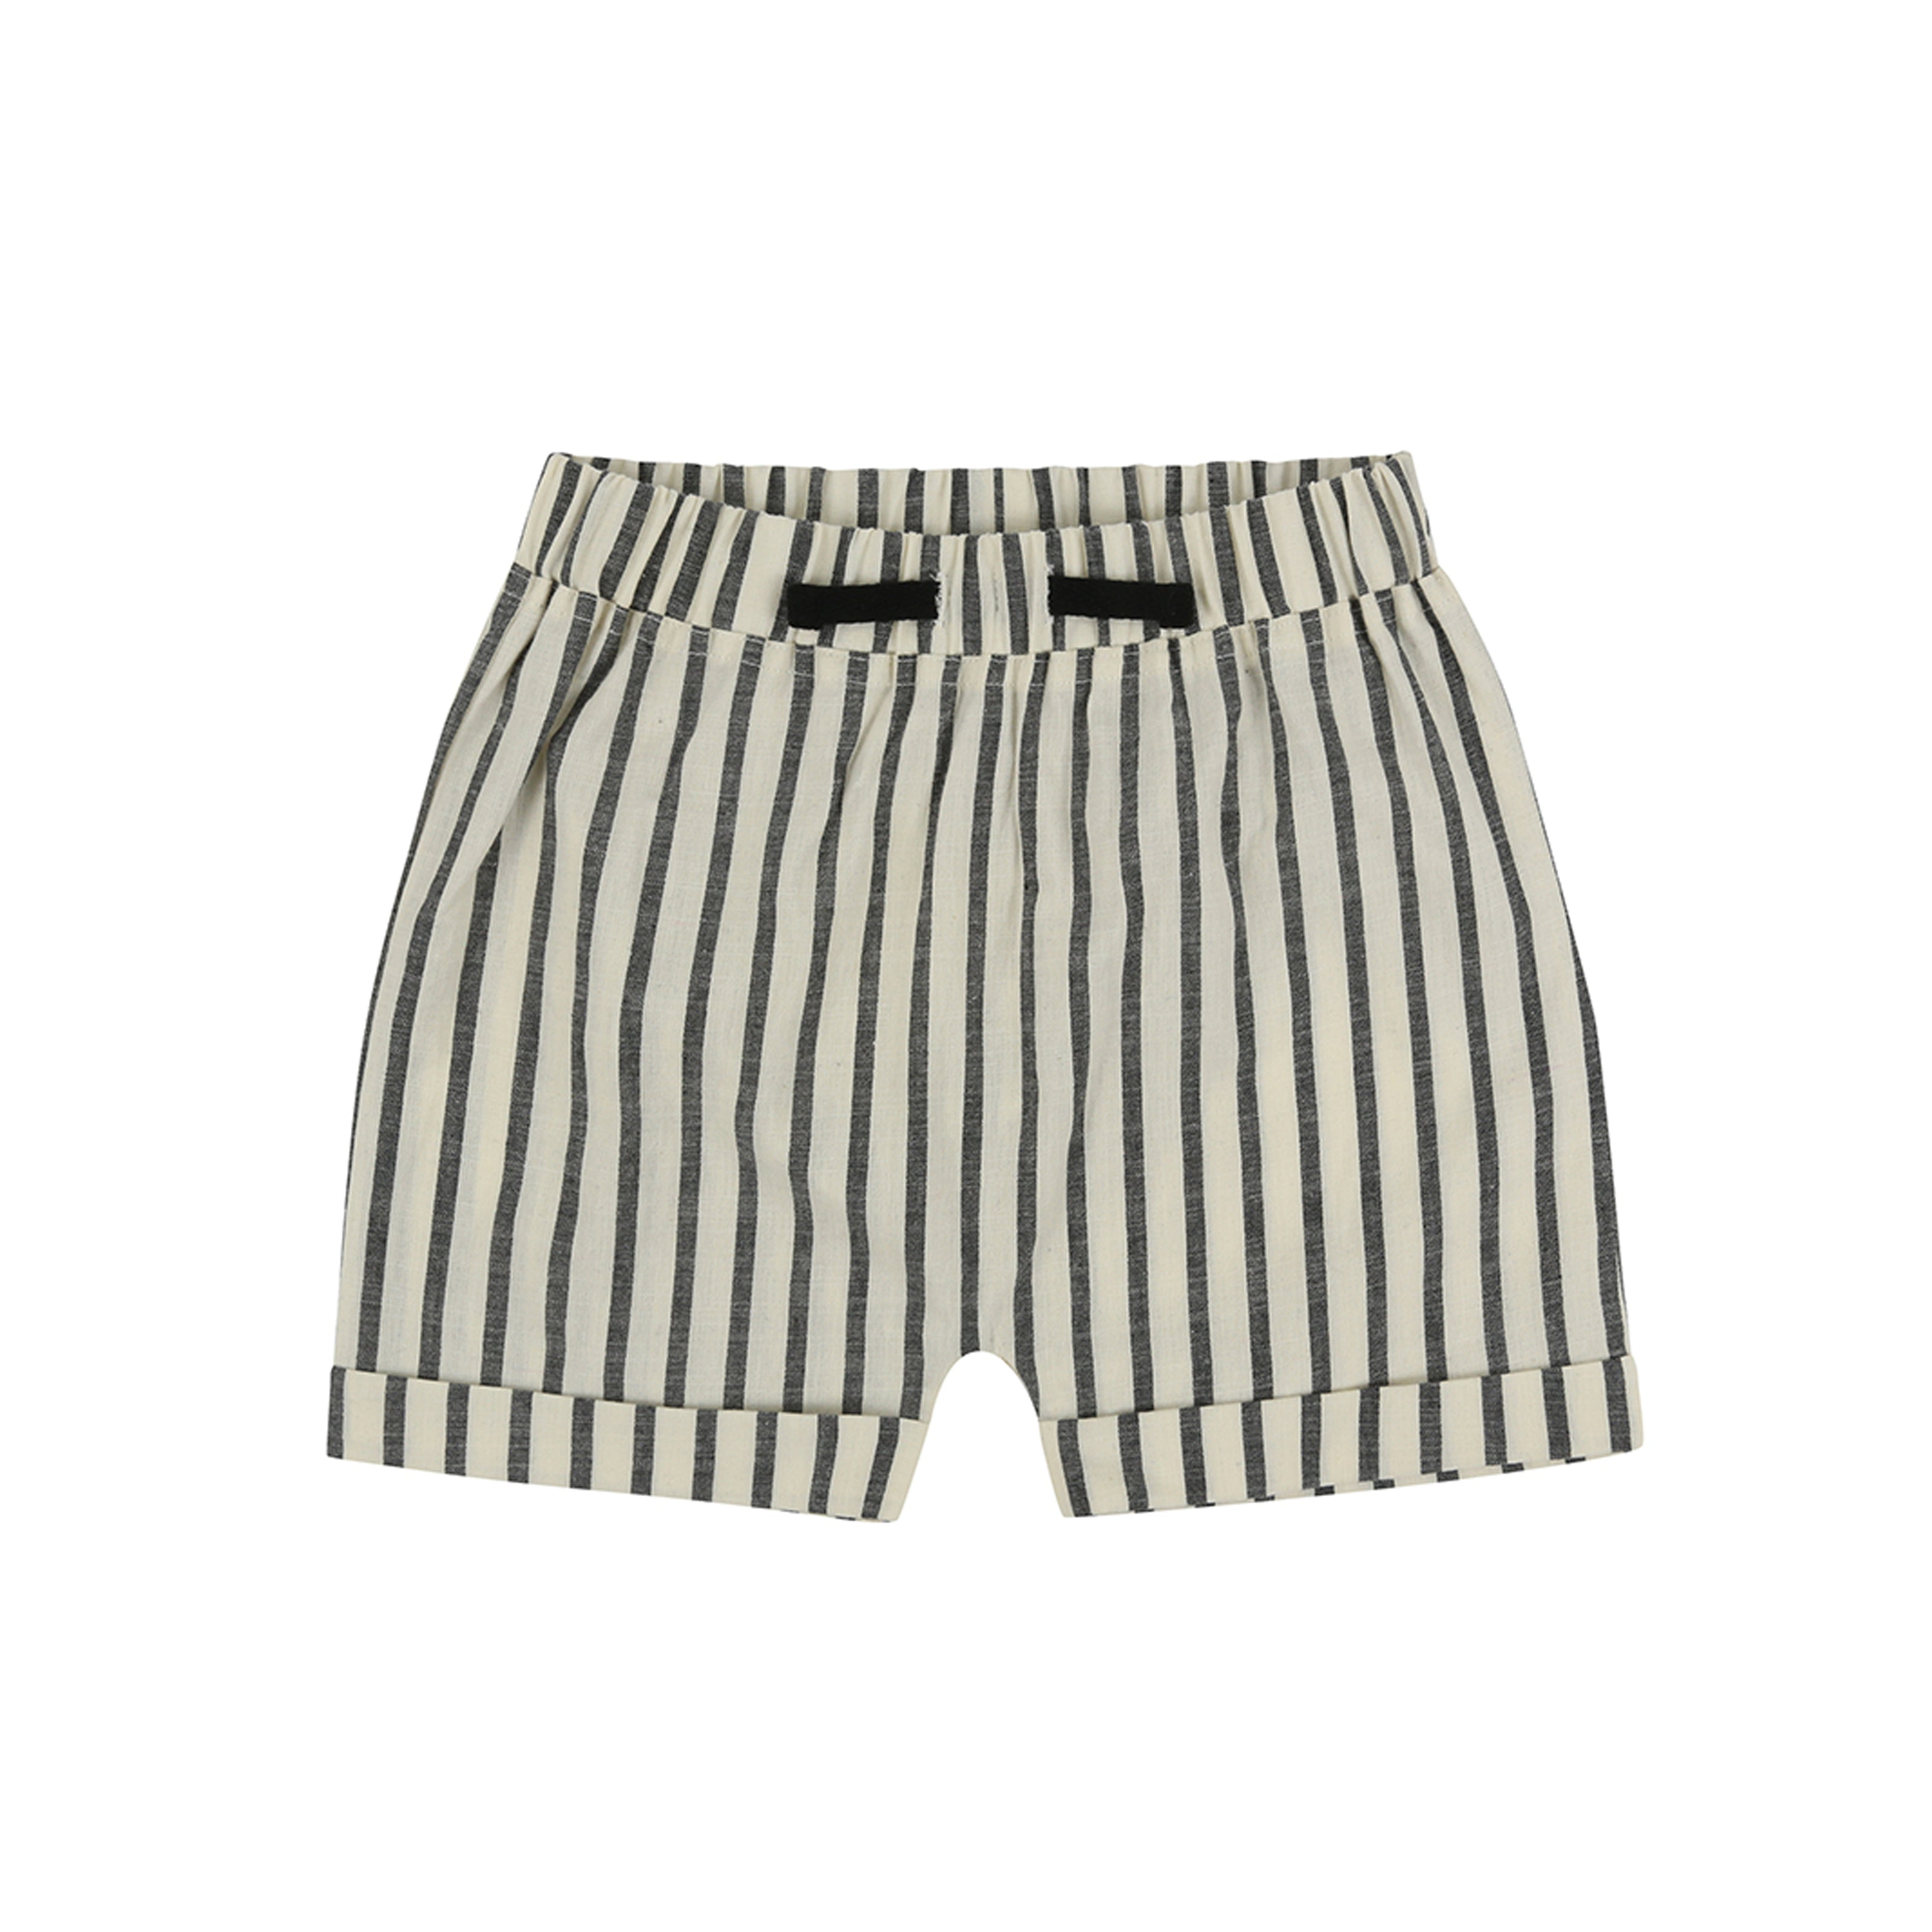 Turtledove London Woven Stripe Shorts